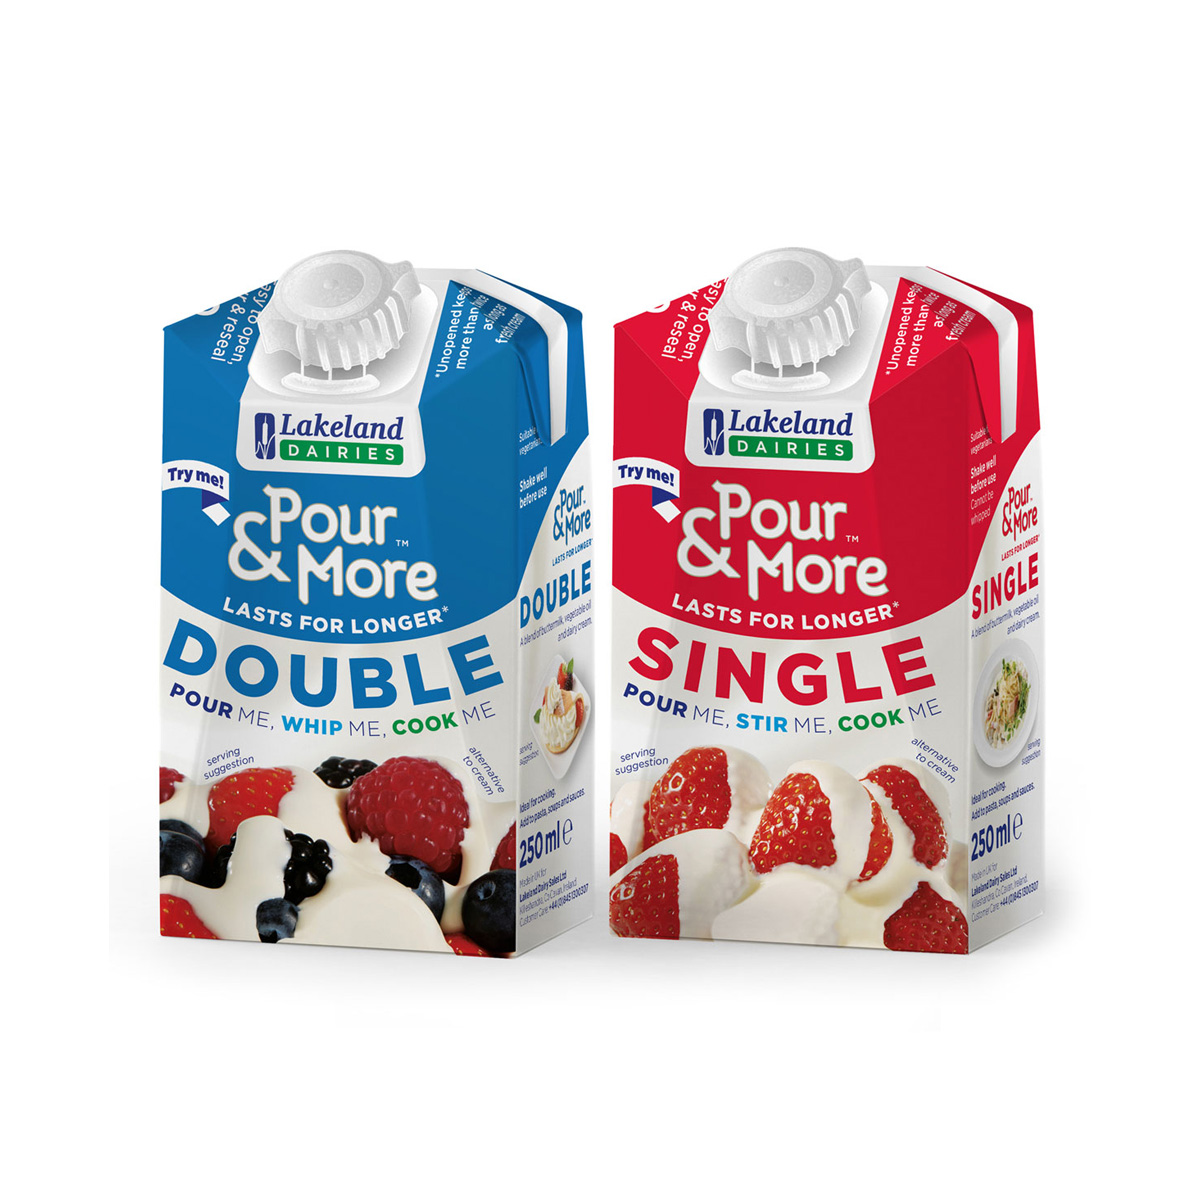 Lakeland Dairies Pour & More